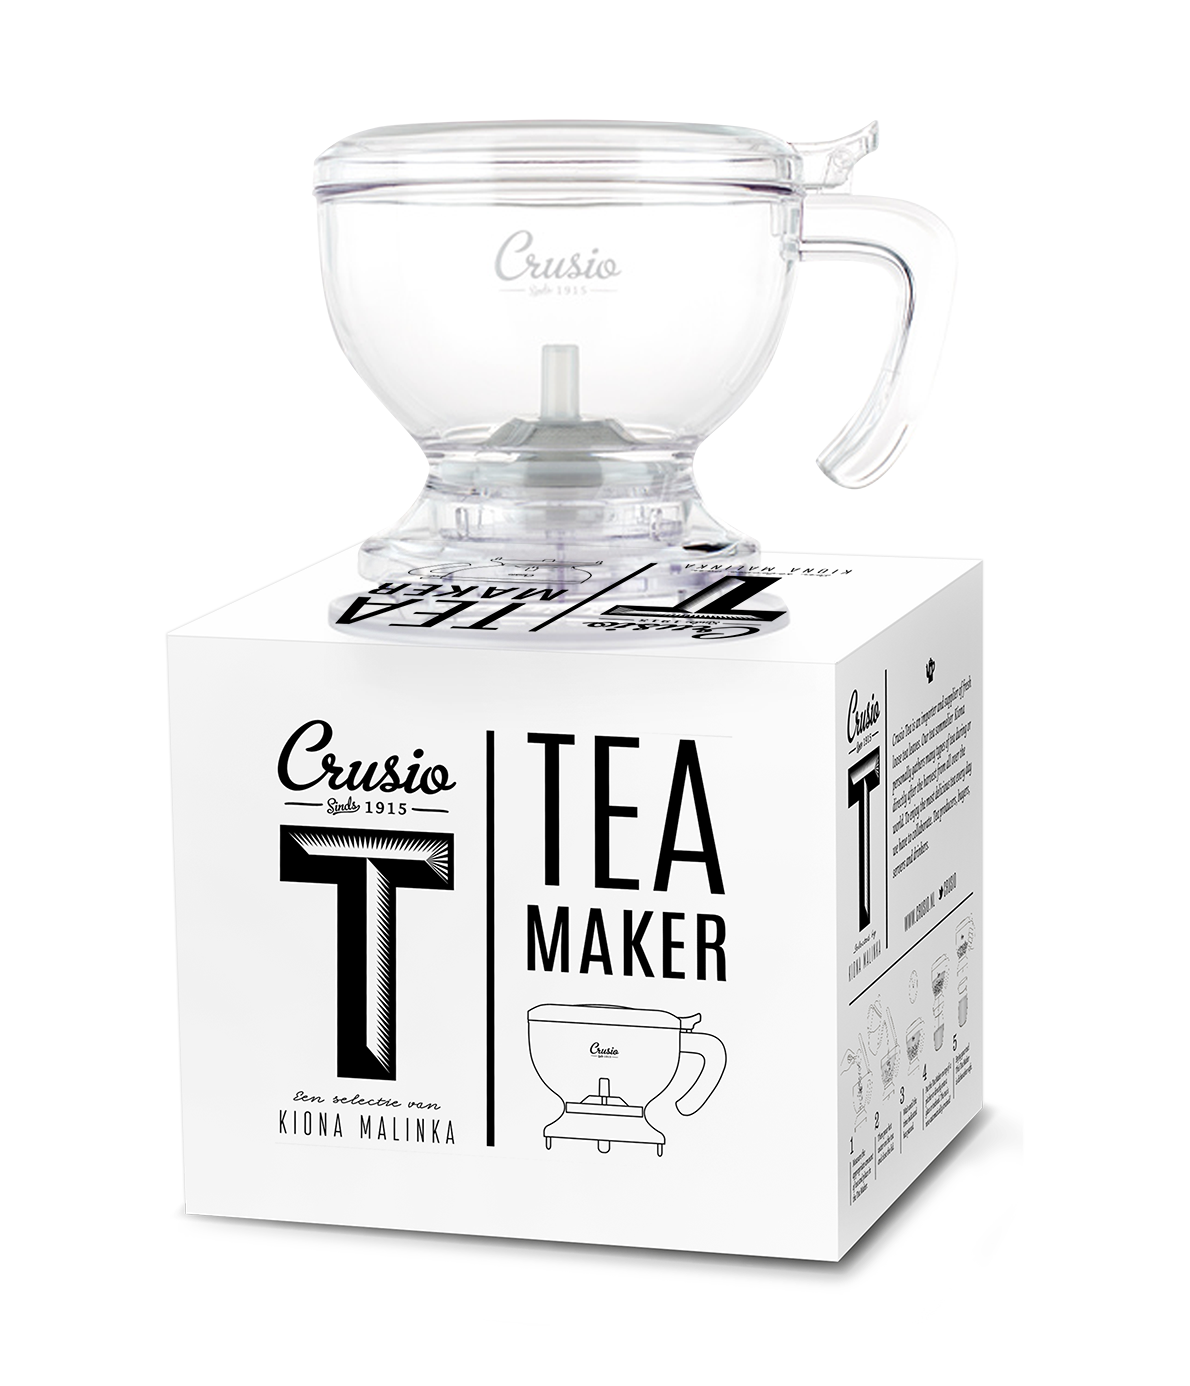 Crusio Tea Maker